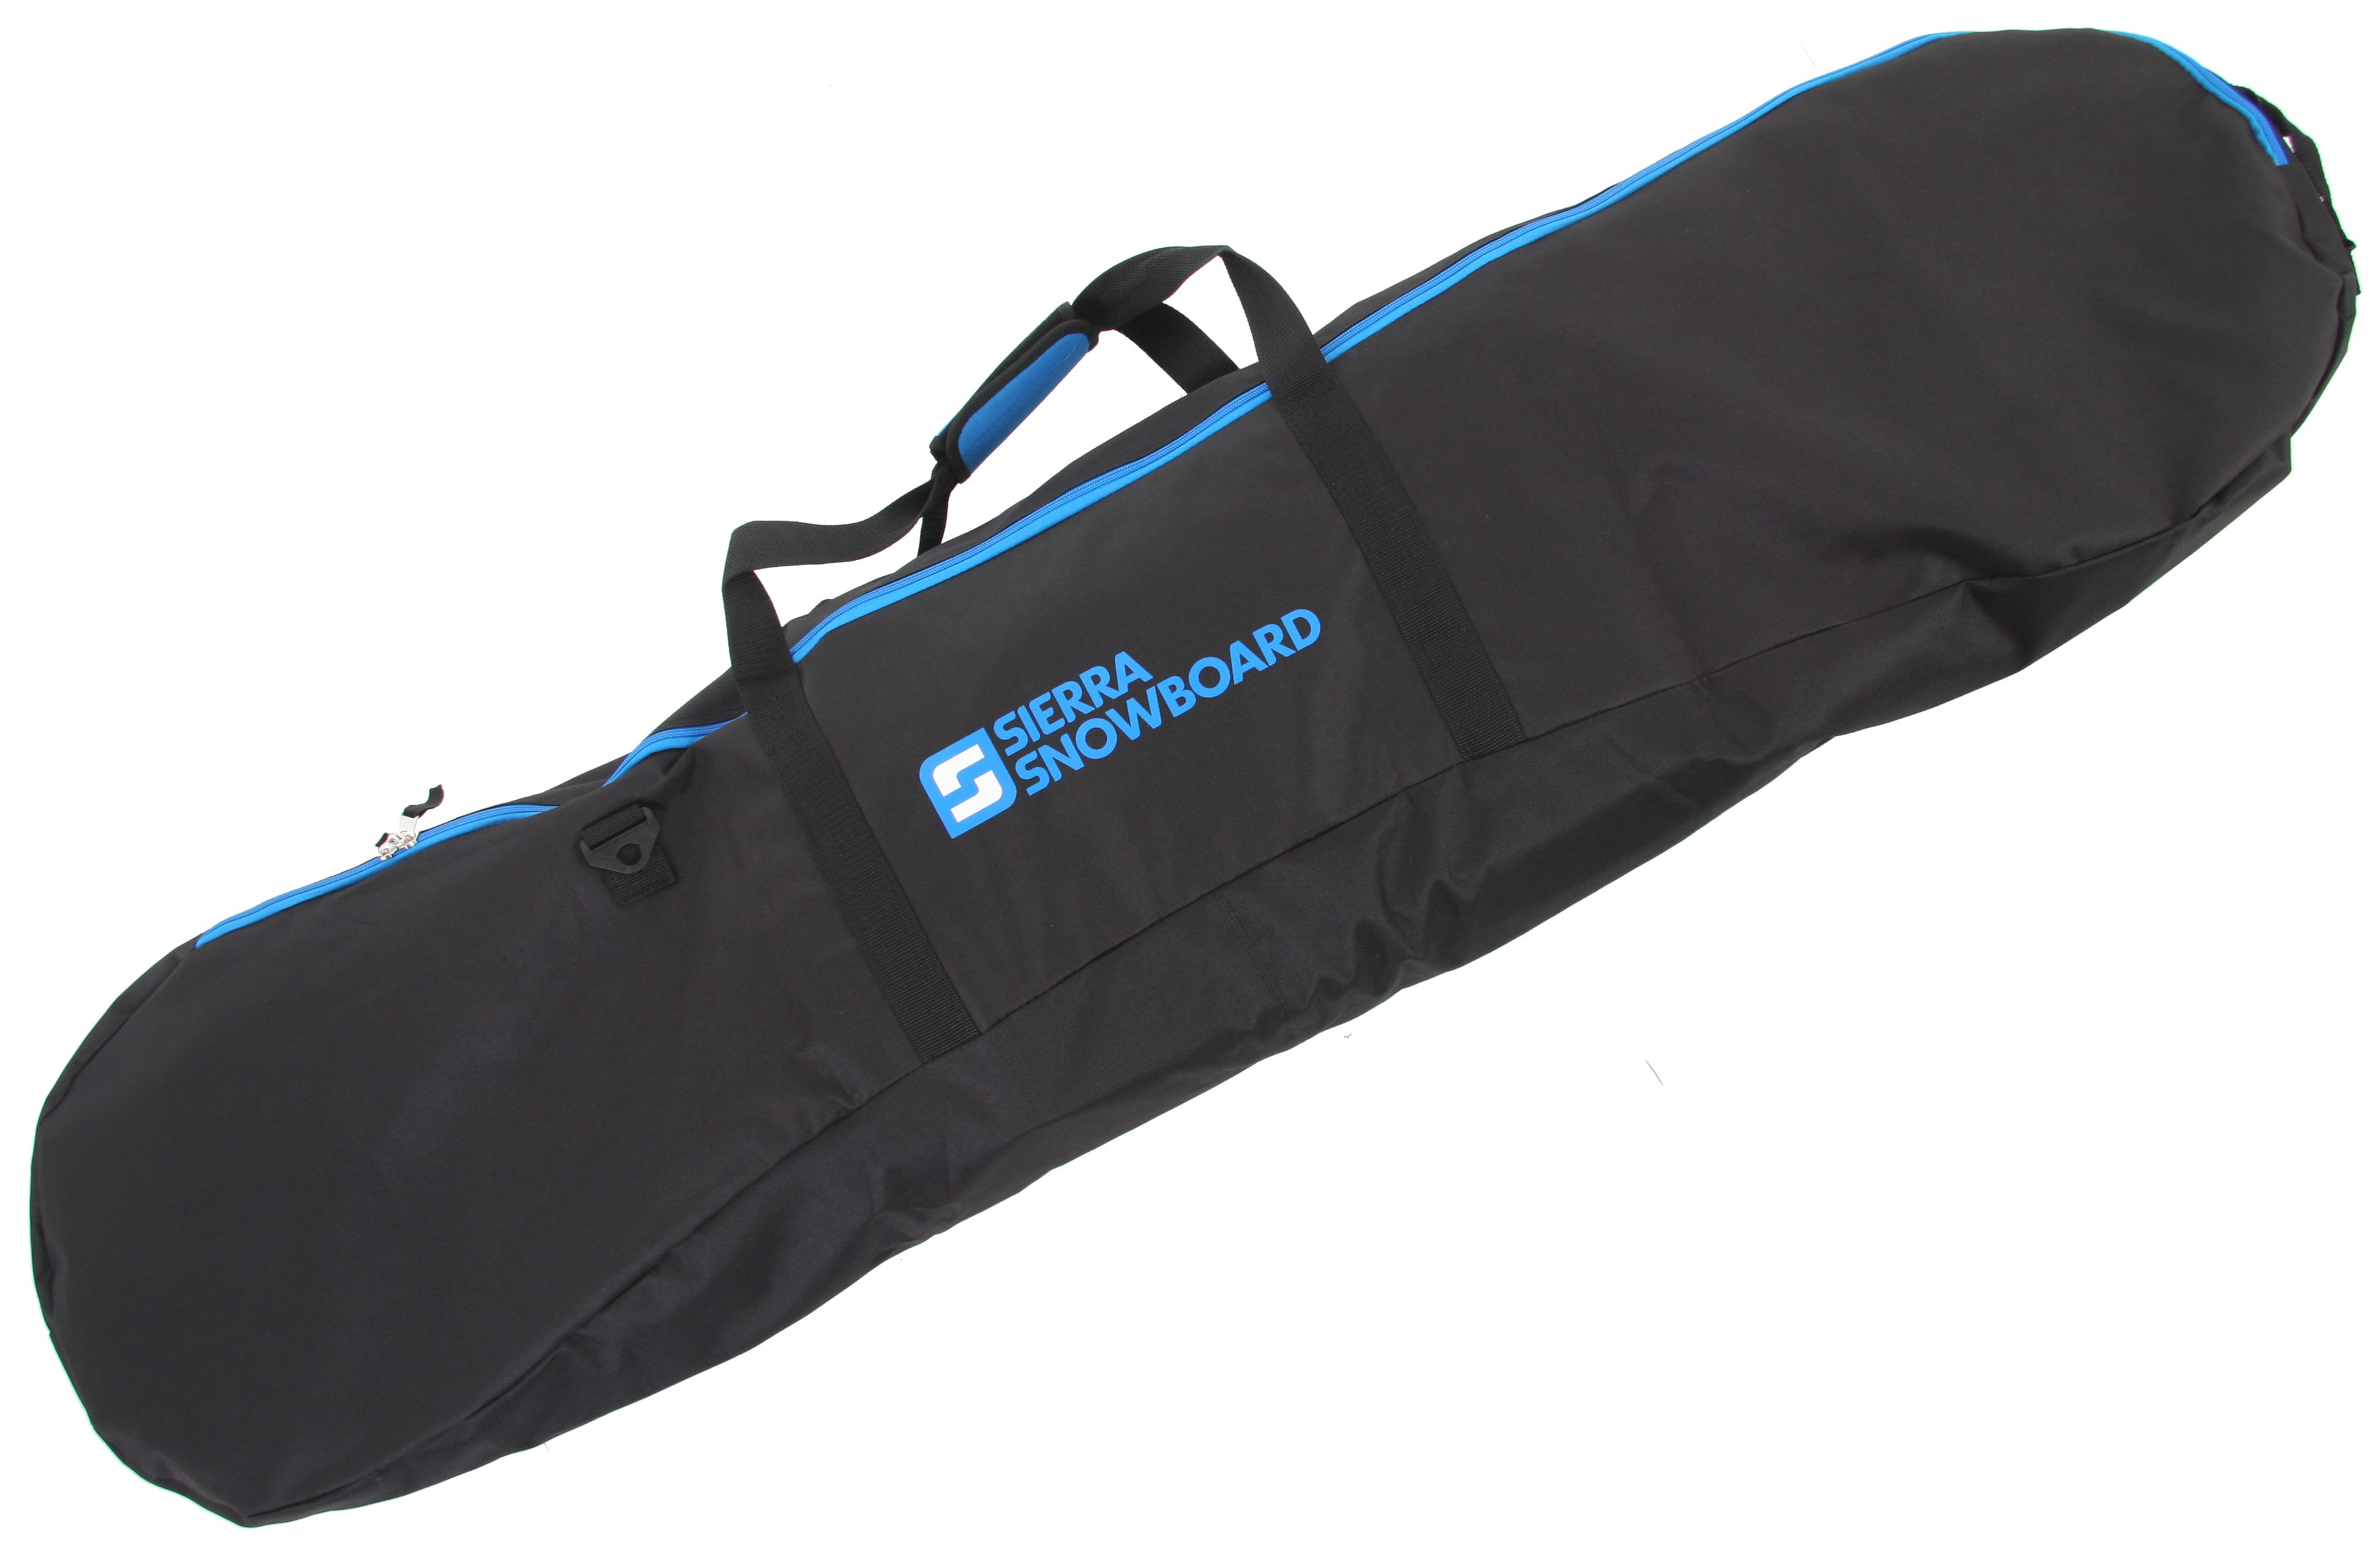 Snowboard Save the bumps and scrapes on your snowboard for the mountain, store and carry your board in the Sierra Logo Snowboard Bag and keep it safe while traveling. The contrast zipper gives this snowboard bag style, making it easily recognizable. You will be able to comfortably carry this Sierra snowboard bag with either the removable and adjustable shoulder strap or the carrying handle. Key Features of the Sierra Logo Snowboard Bag:  Removable adjustable shoulder strap  Carrying handle straps  Non-padded  Contrast zipper - $21.95